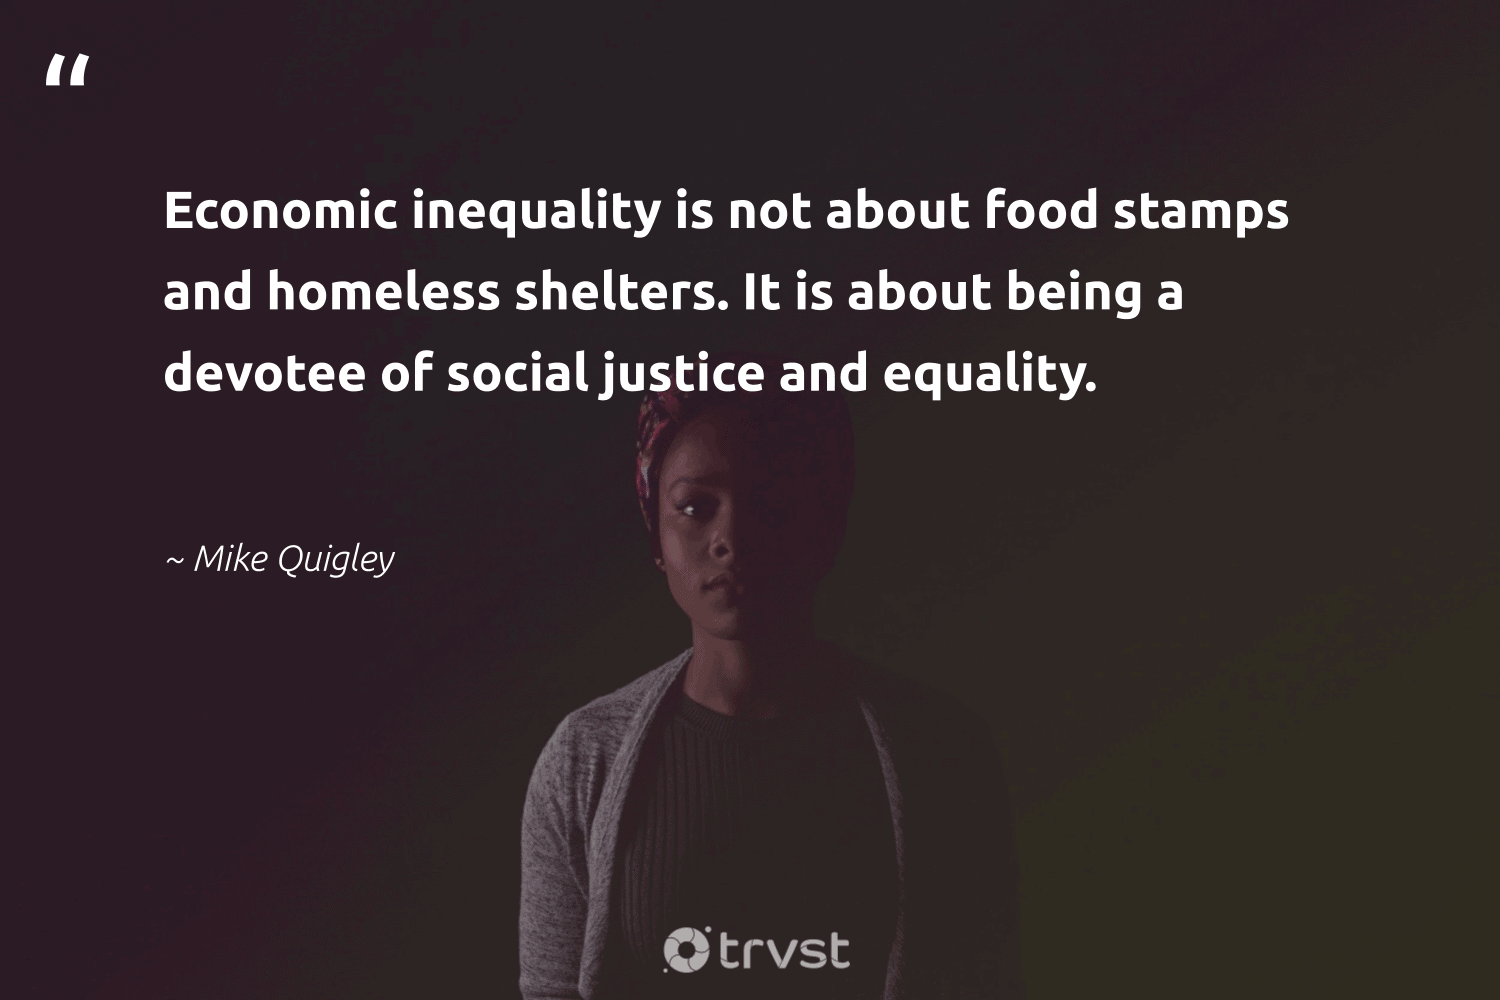 """""""Economic inequality is not about food stamps and homeless shelters. It is about being a devotee of social justice and equality.""""  - Mike Quigley #trvst #quotes #equality #justice #socialjustice #homeless #food #standup #socialgood #weareallone #dotherightthing #equalrights"""